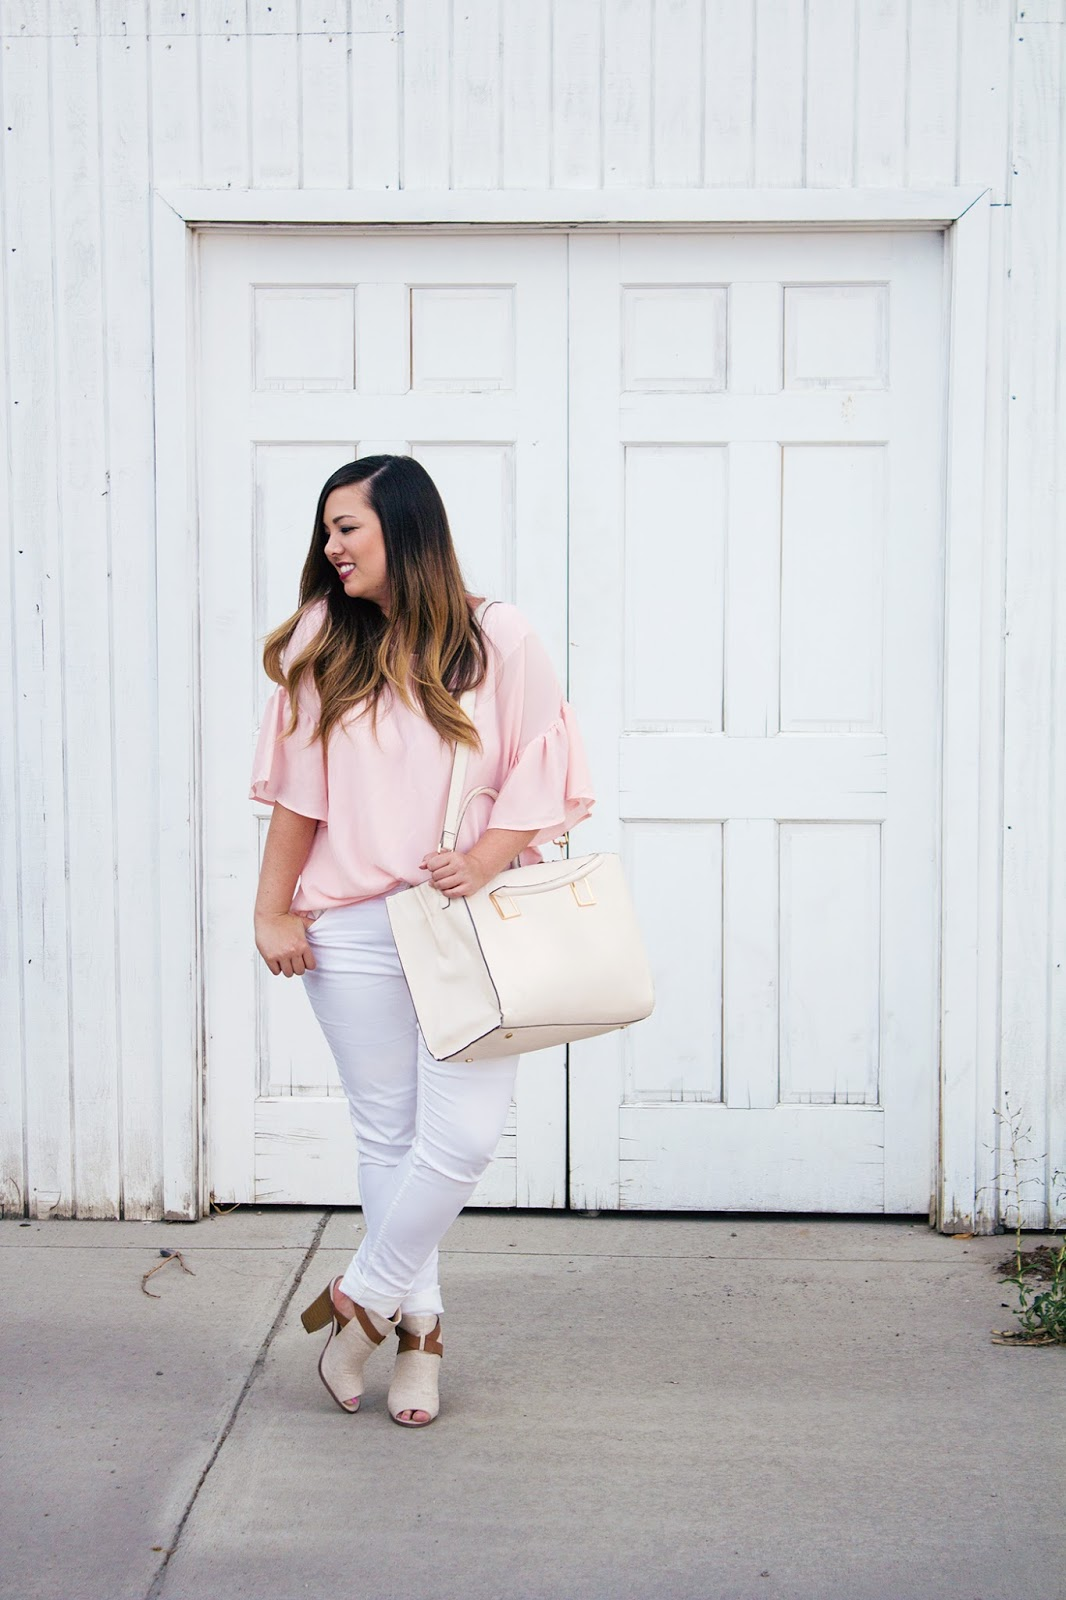 fashionable modest womens clothing, lds women bloggers, modest fashion tips, modest fashion modeling, modest fashion ideas, modest fashion women, new mom blogger tips, new mom clothing, postpartum clothing, postpartum outfits, postpartum fashion, affordable modest clothing